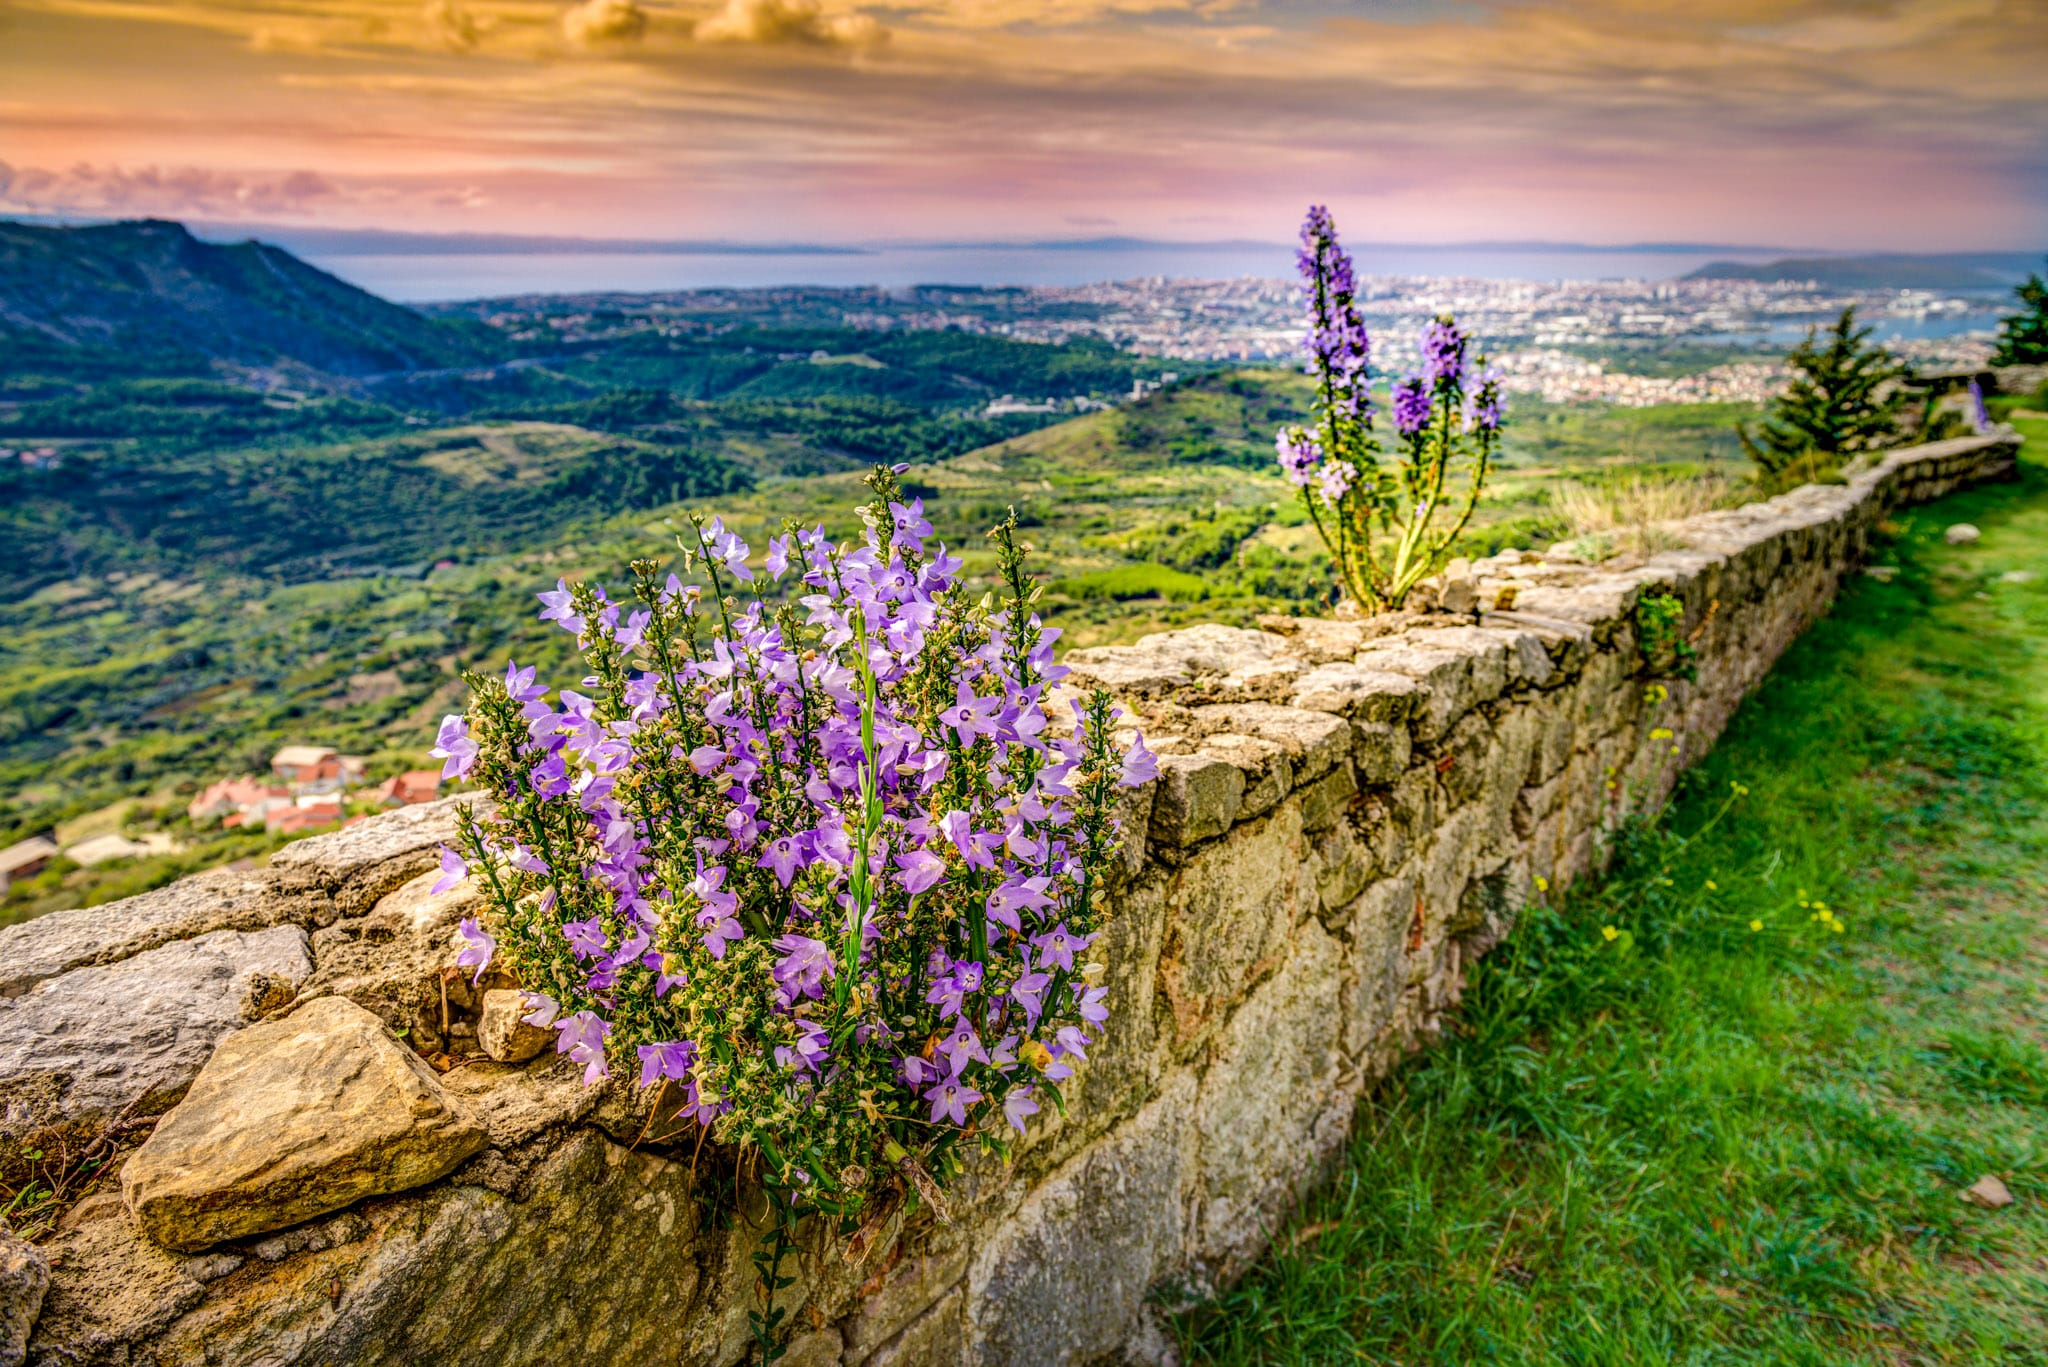 Campanula grow out of the walls at Klis Fortress overlooking the Croatian city of Split.